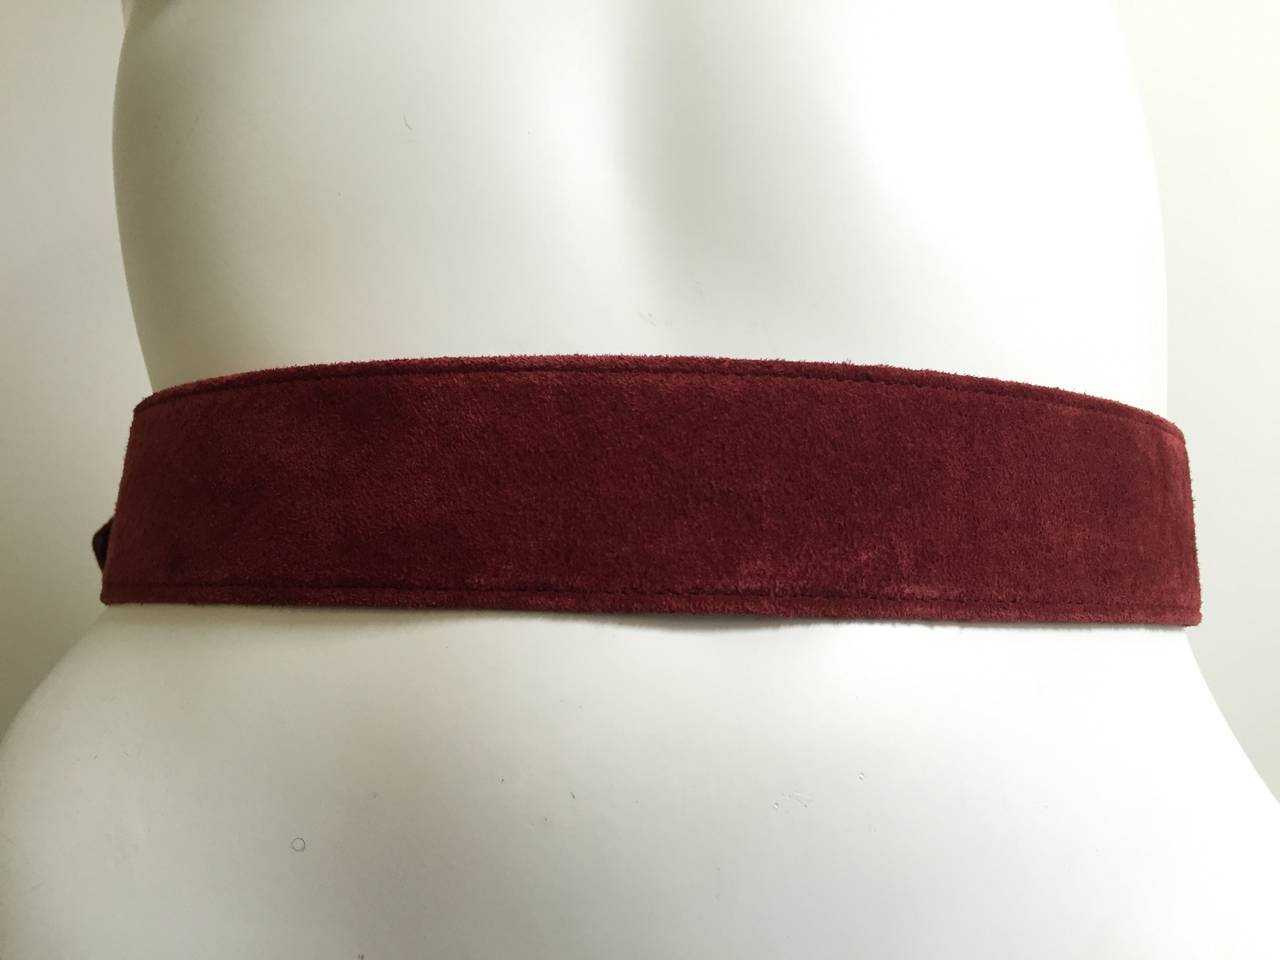 Christian Lacroix 1980s suede belt size 4. In Good Condition For Sale In Atlanta, GA